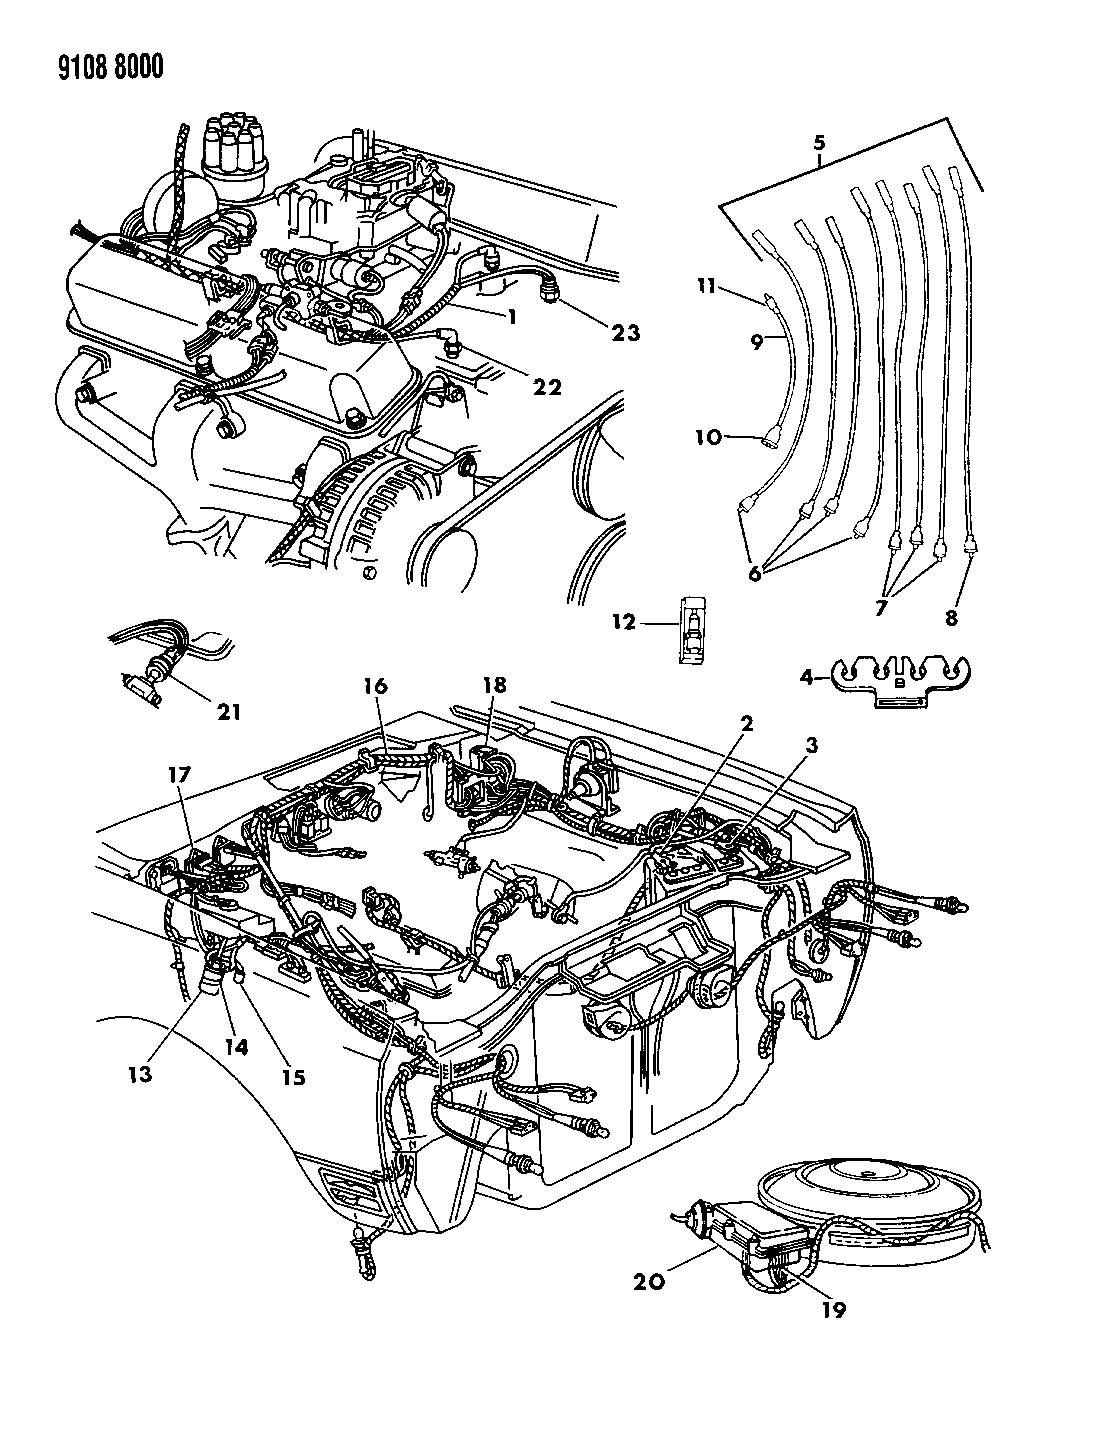 1989 dodge diplomat wiring - engine